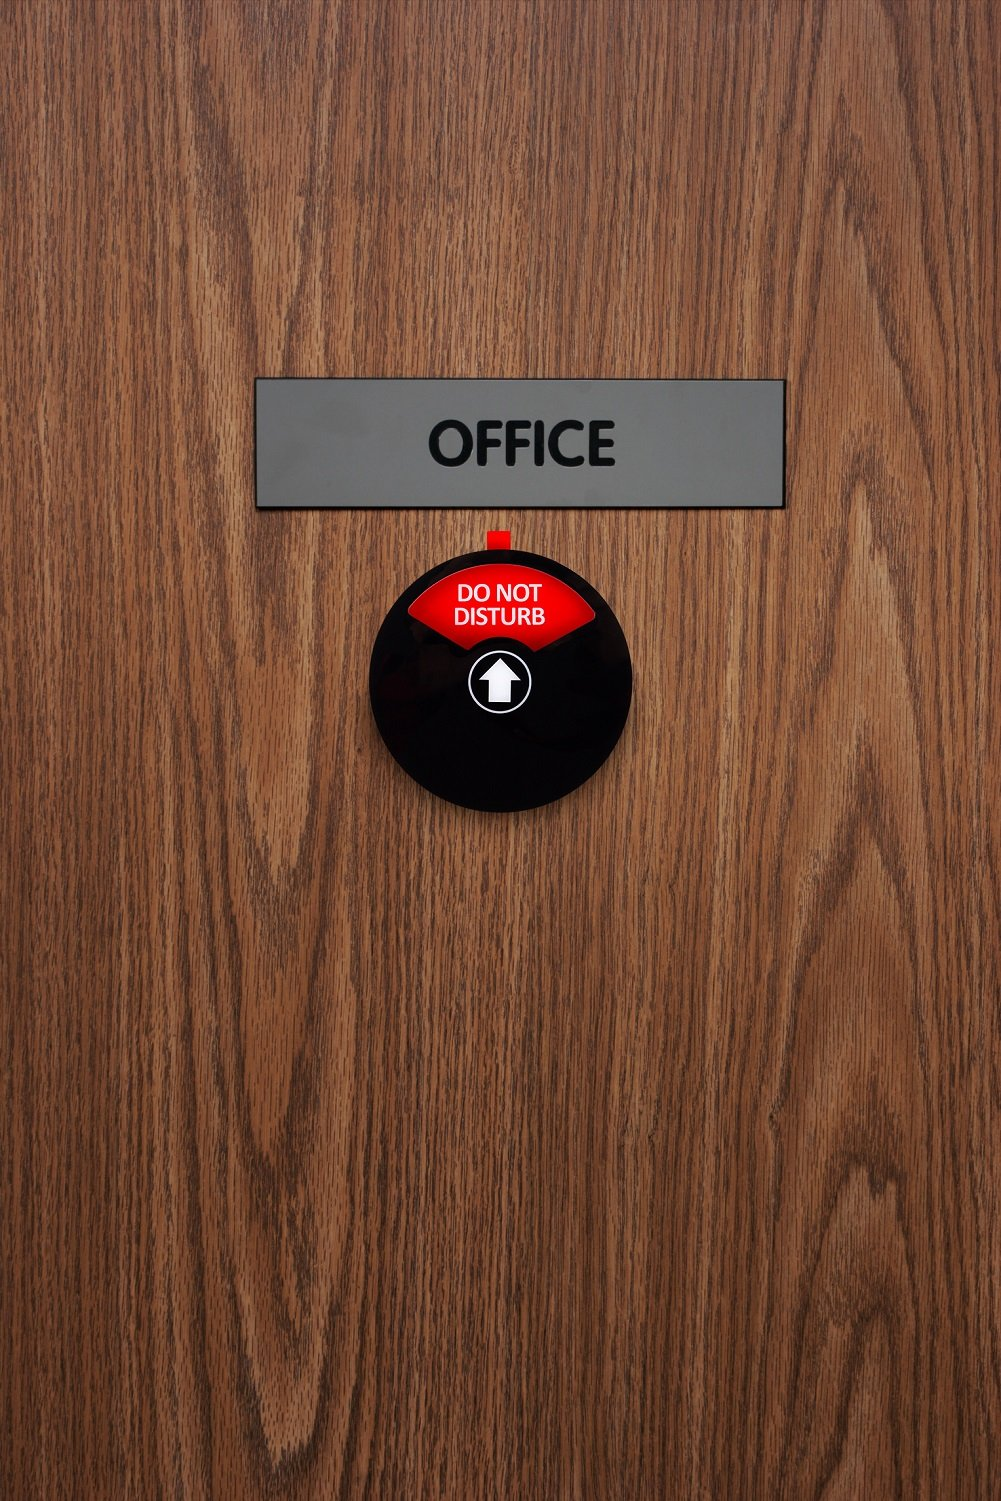 Kichwit Privacy Sign, Do Not Disturb Sign, Out of Office Sign, Welcome Please Knock Sign, Office Sign, Conference Sign for Offices, 5 Inch, Black by Kichwit (Image #7)